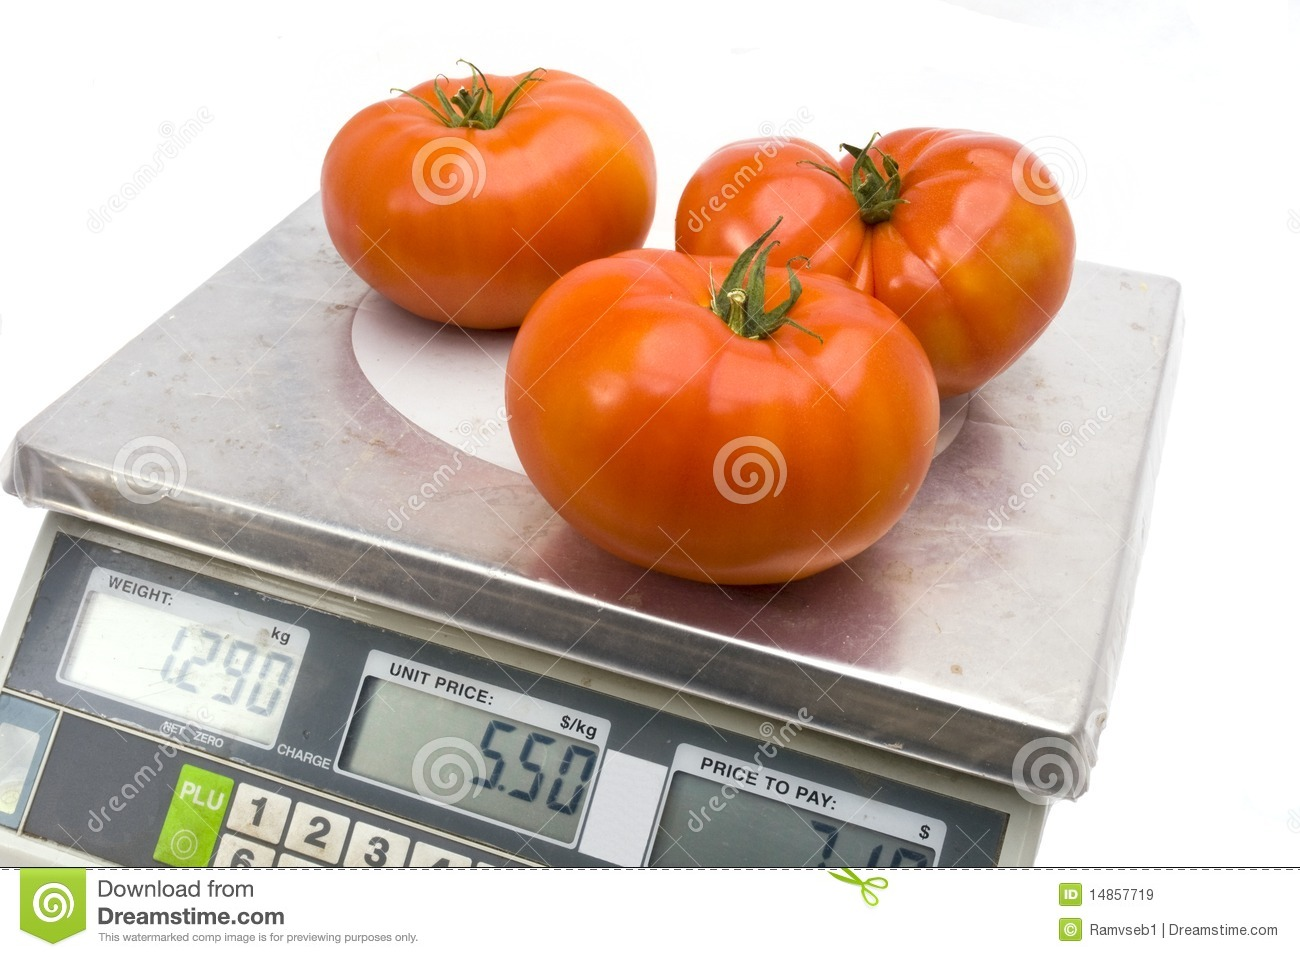 Tomatoes on the scales